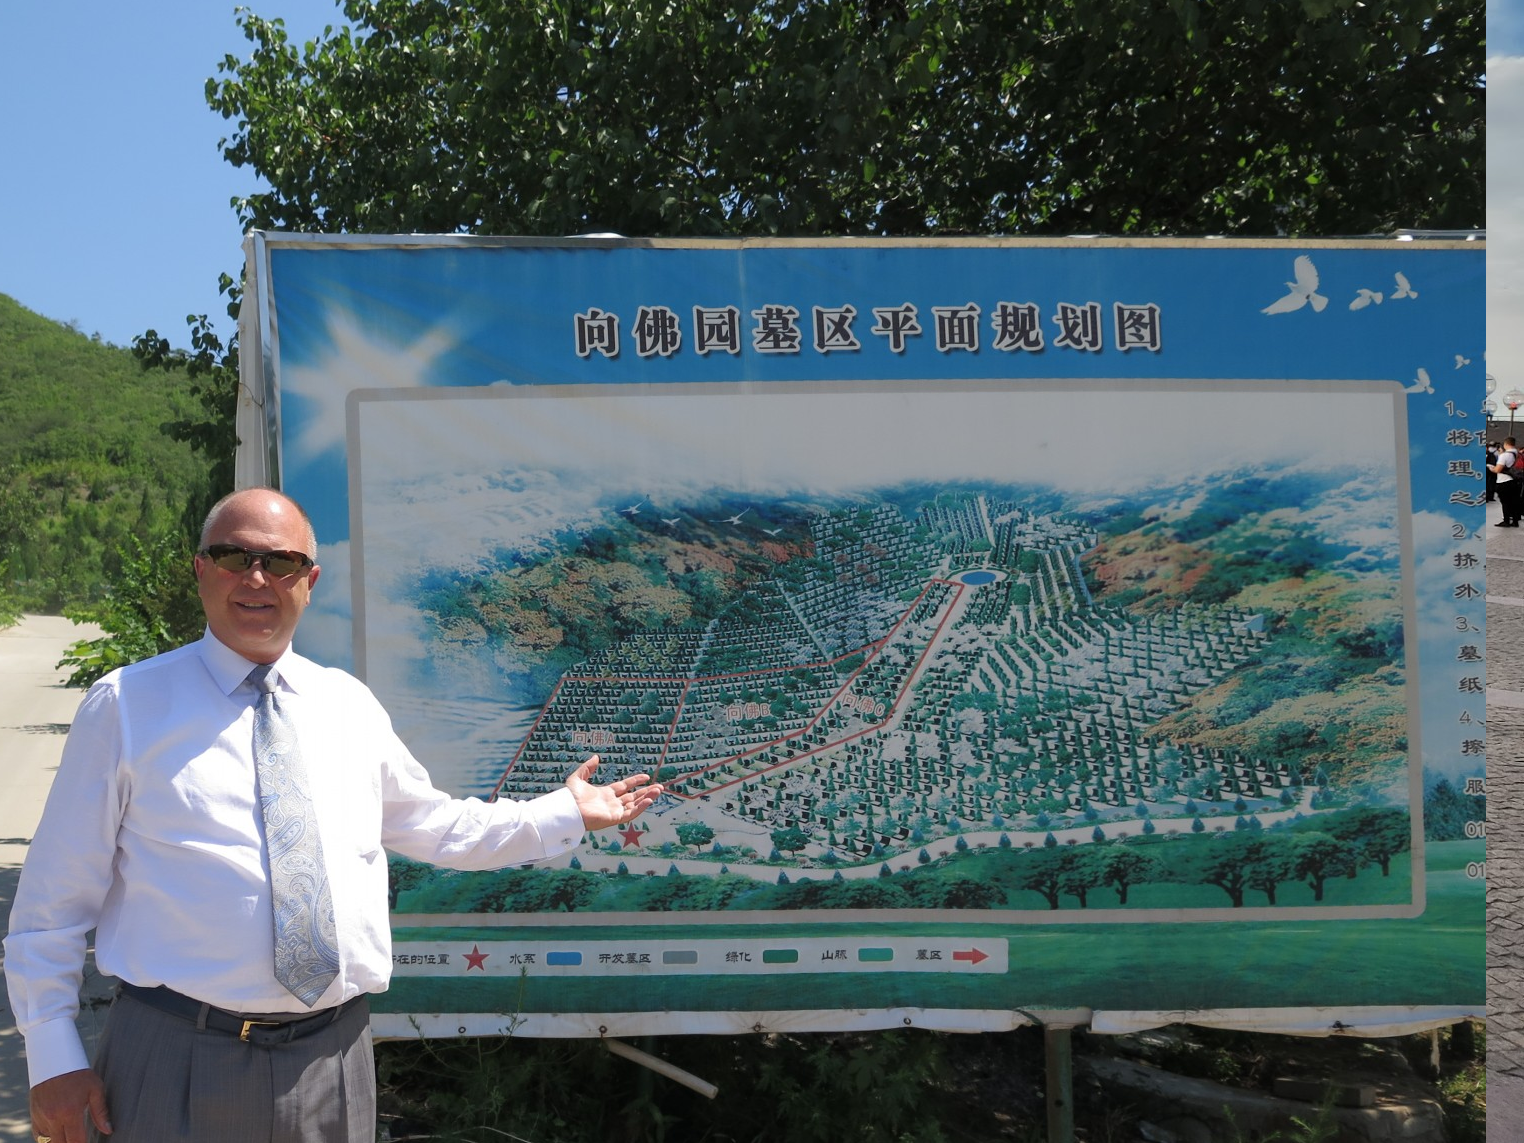 Visiting Cemeteries and Funeral Homes in Beijing China